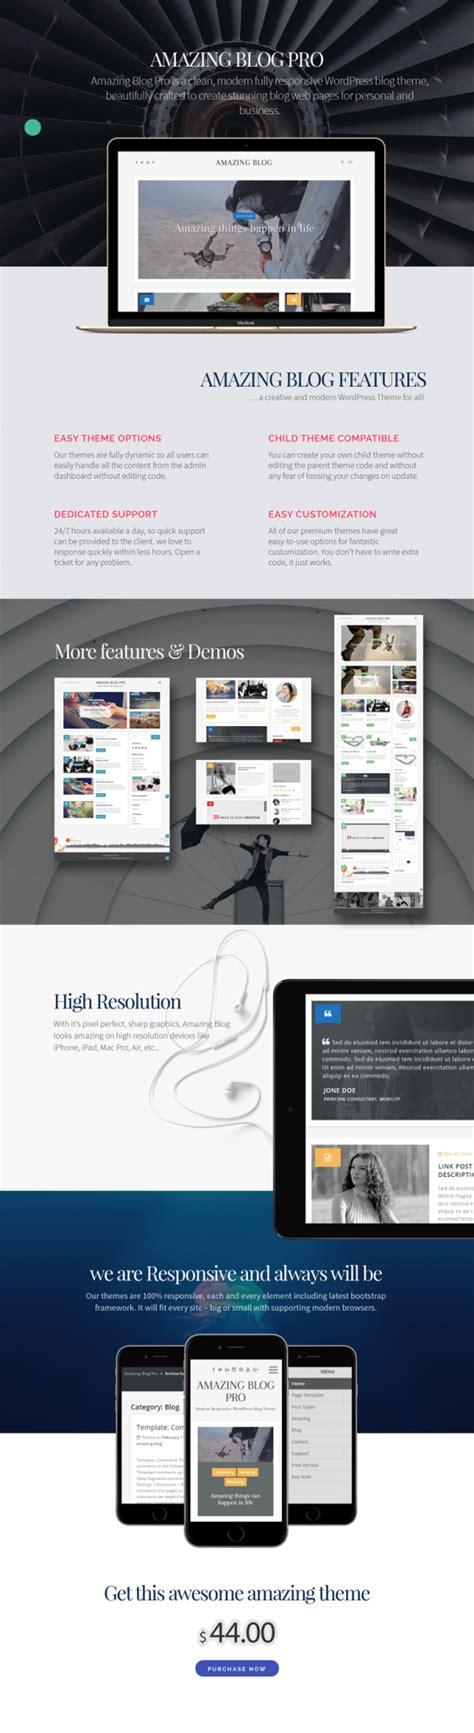 inurl wp content themes store upload how to add multiple social links in amazing blog theme